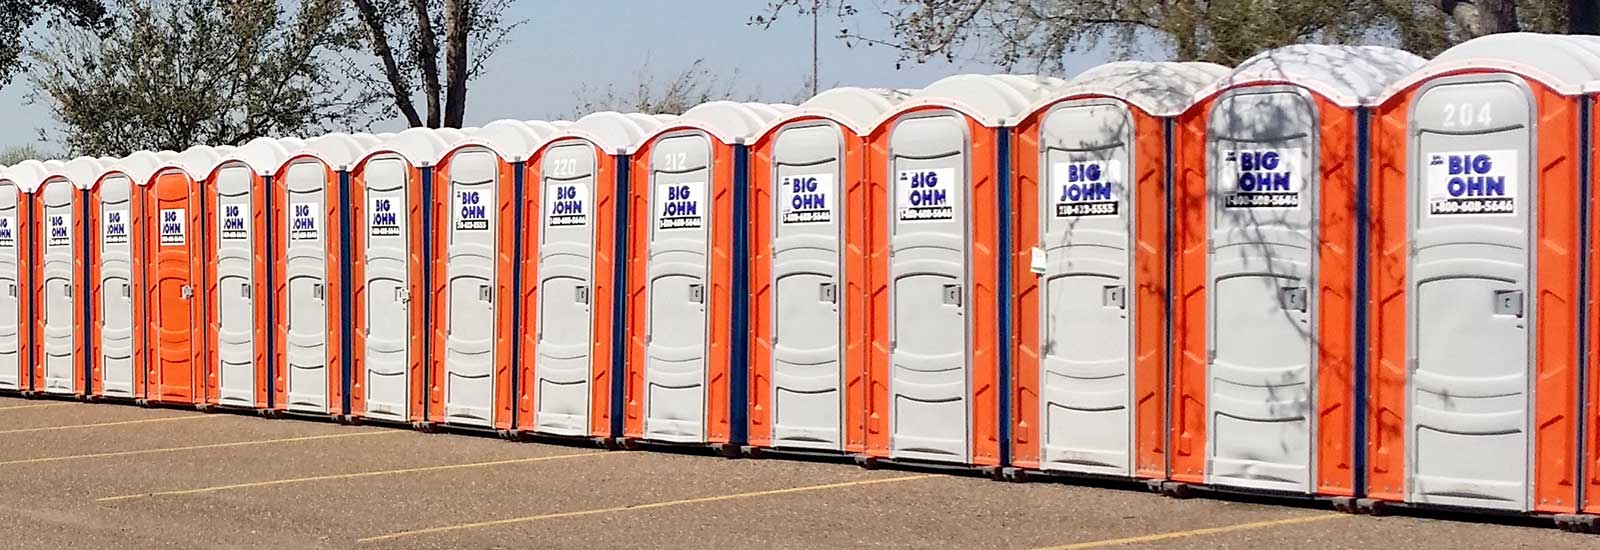 Portable restroom rentals in New Braunfels and San Antonio Texas, Edinburg, Harlingen, Brownsville, McAllen TX, New Braunfels, San Marcos, Rio Grande Valley